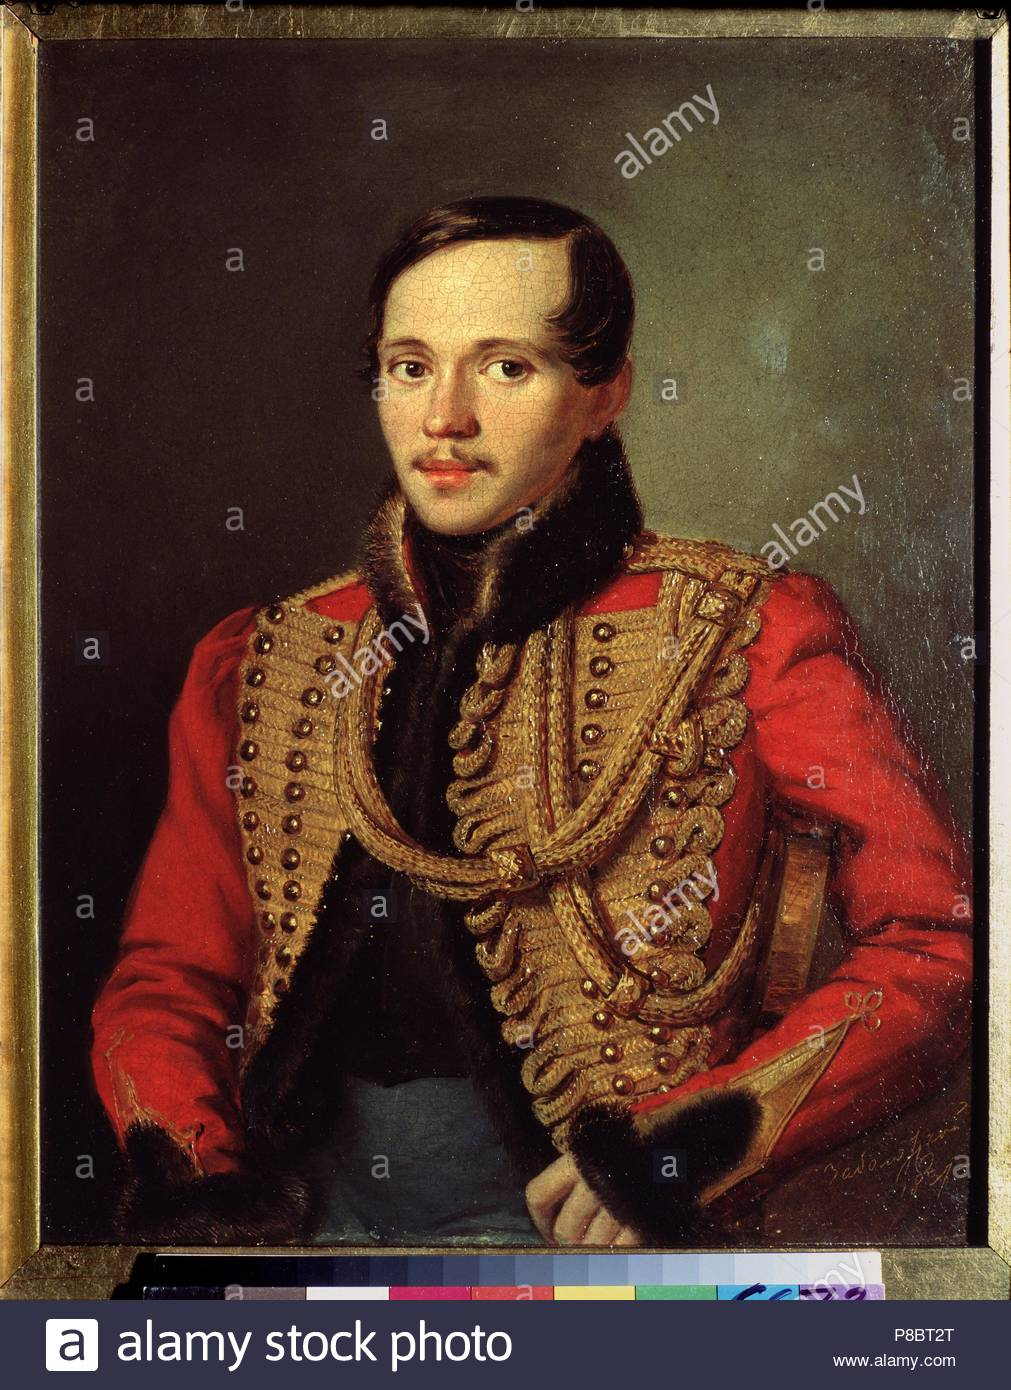 Biography of Mikhail Yuryevich Lermontov. The life and work of Lermontov 61